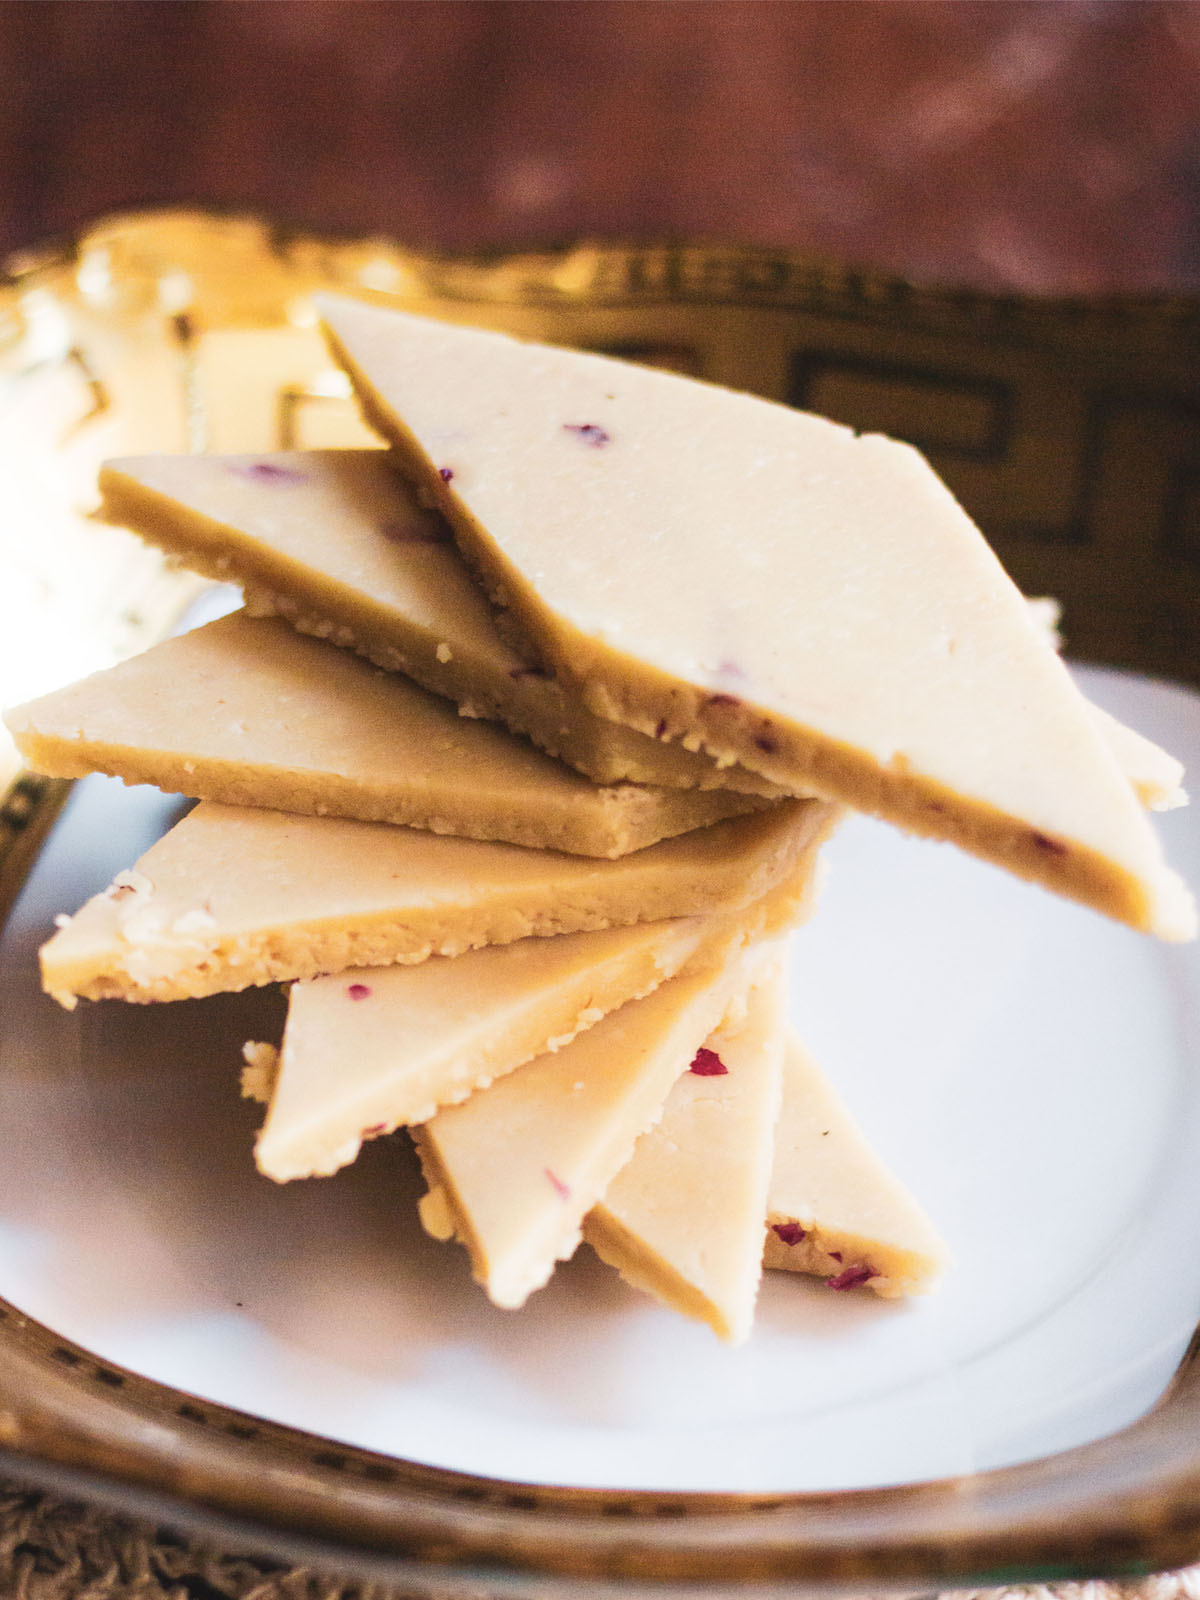 kaju katli stacked spirally on a golden rimmed white square plate